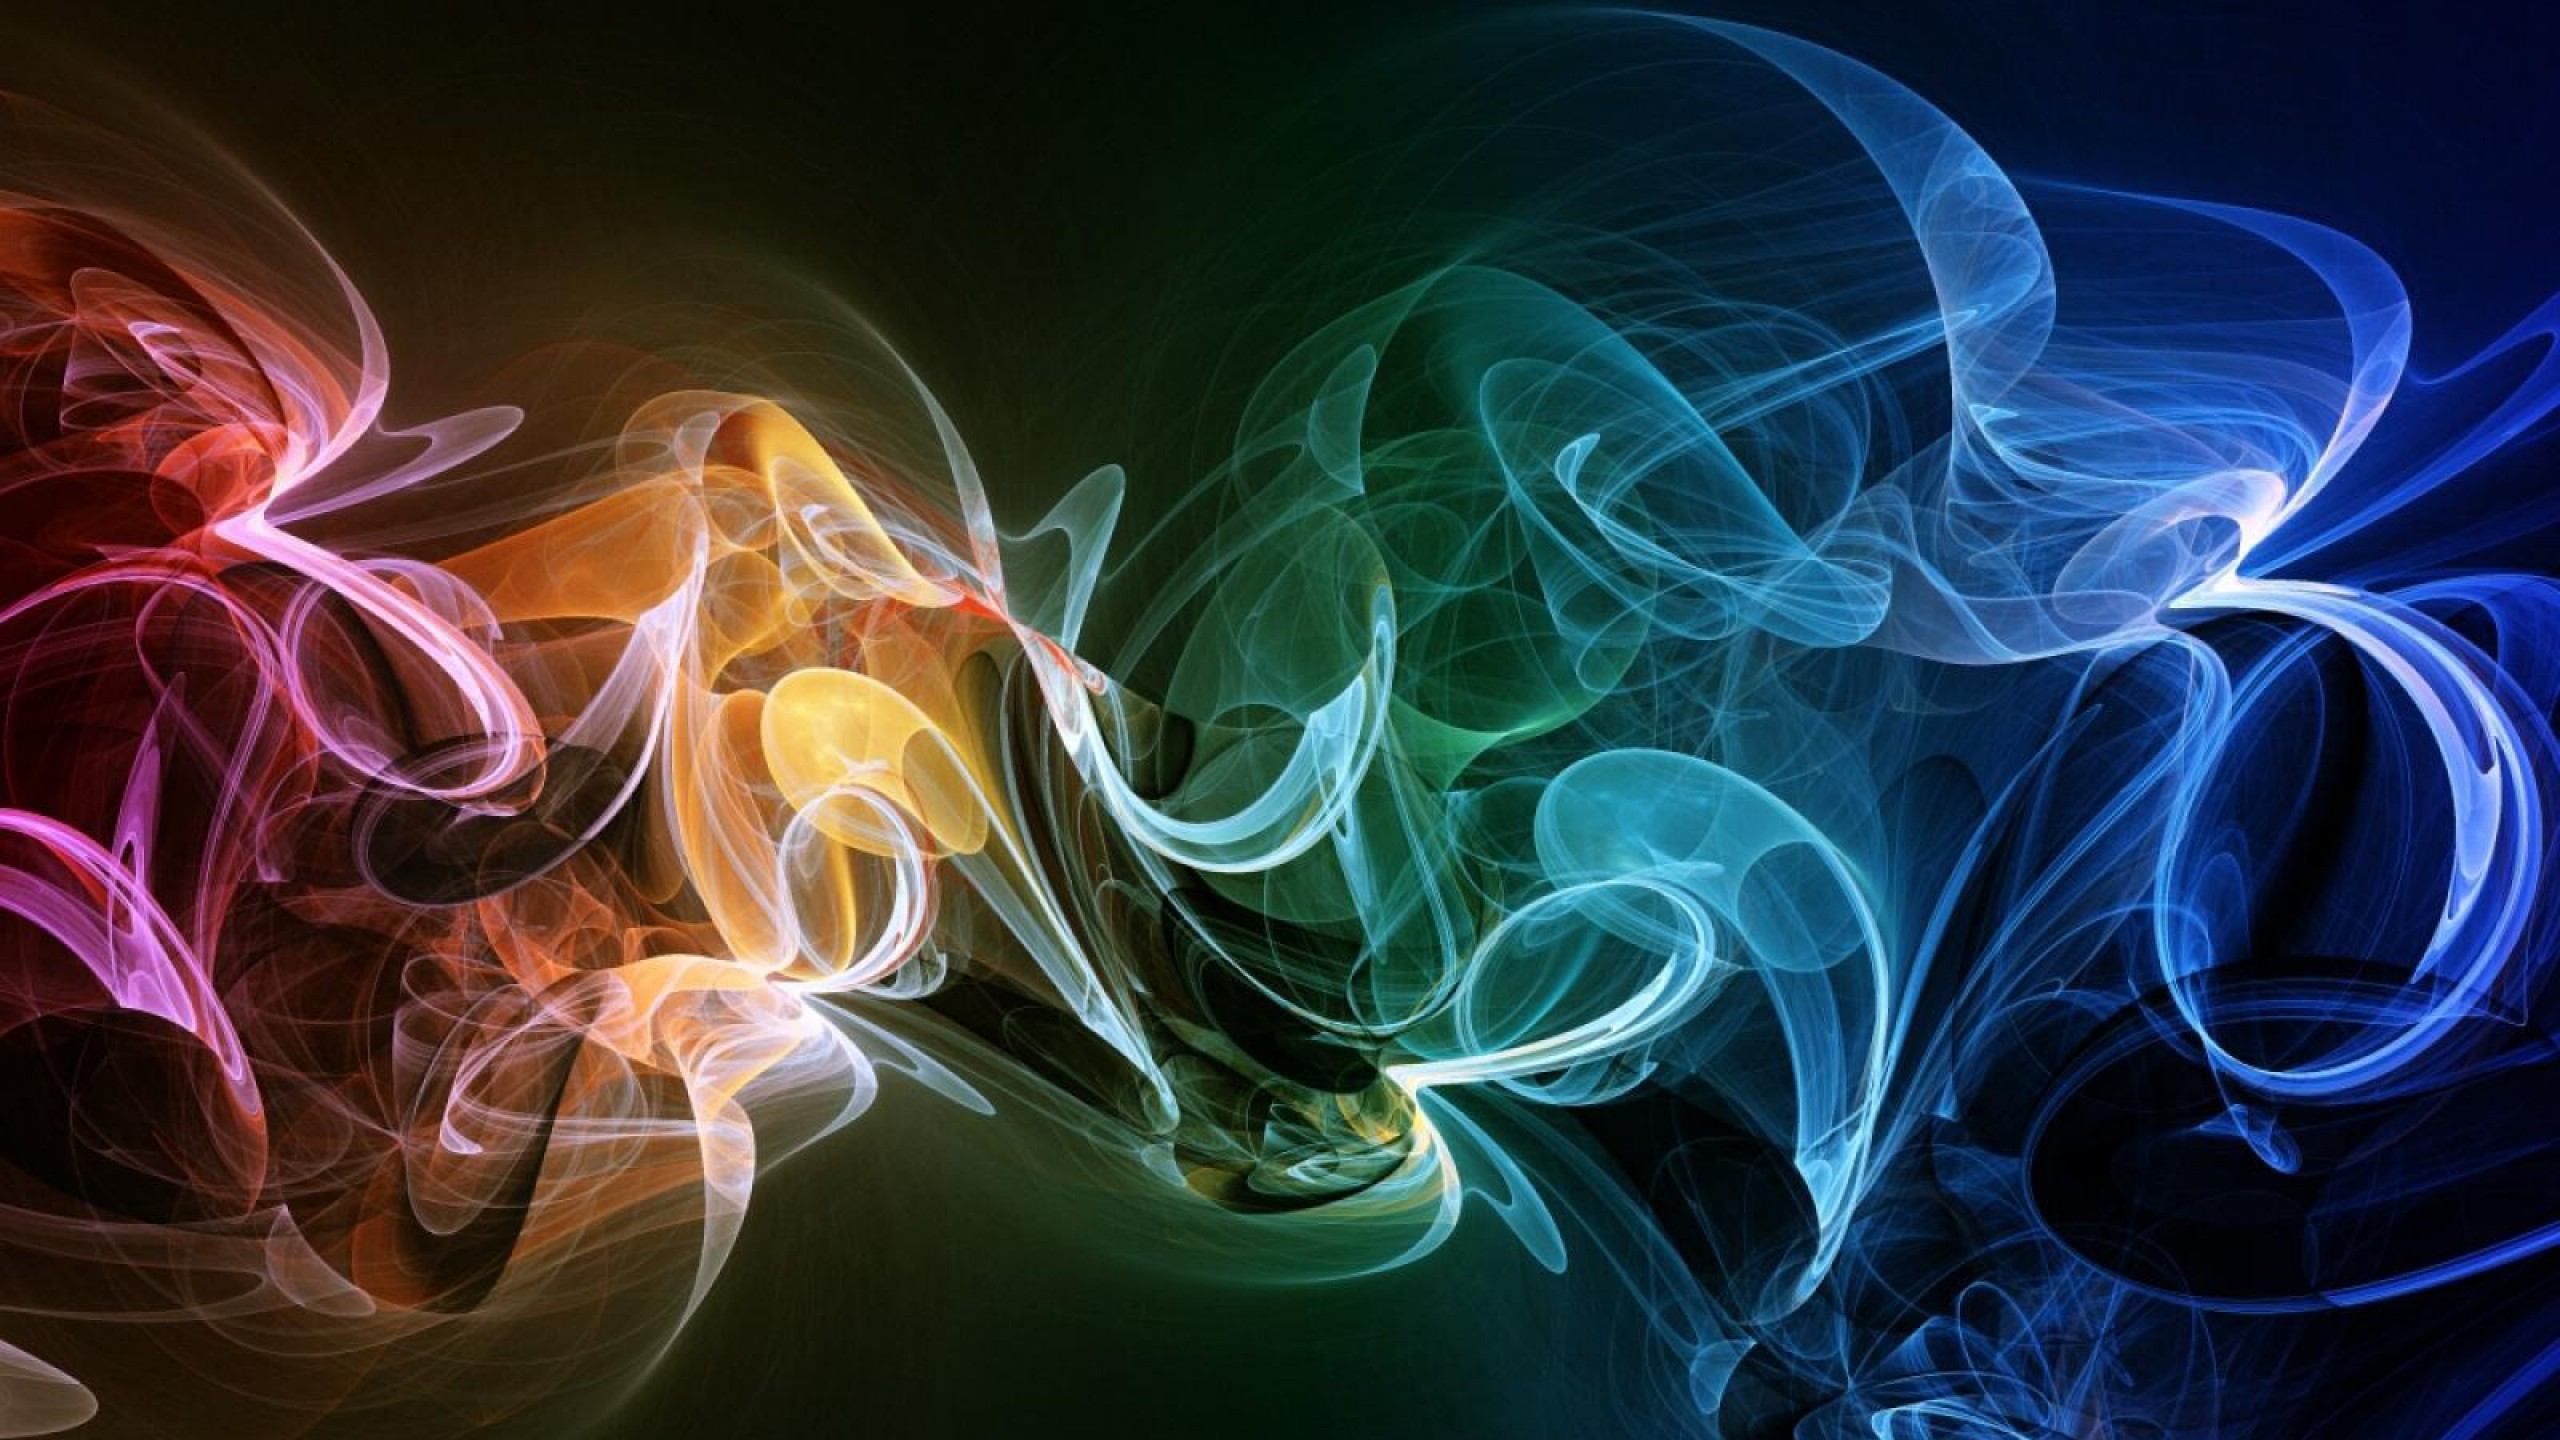 Abstract Smoke Wallpapers Hd Colorful Smoke Hd Wallpapers